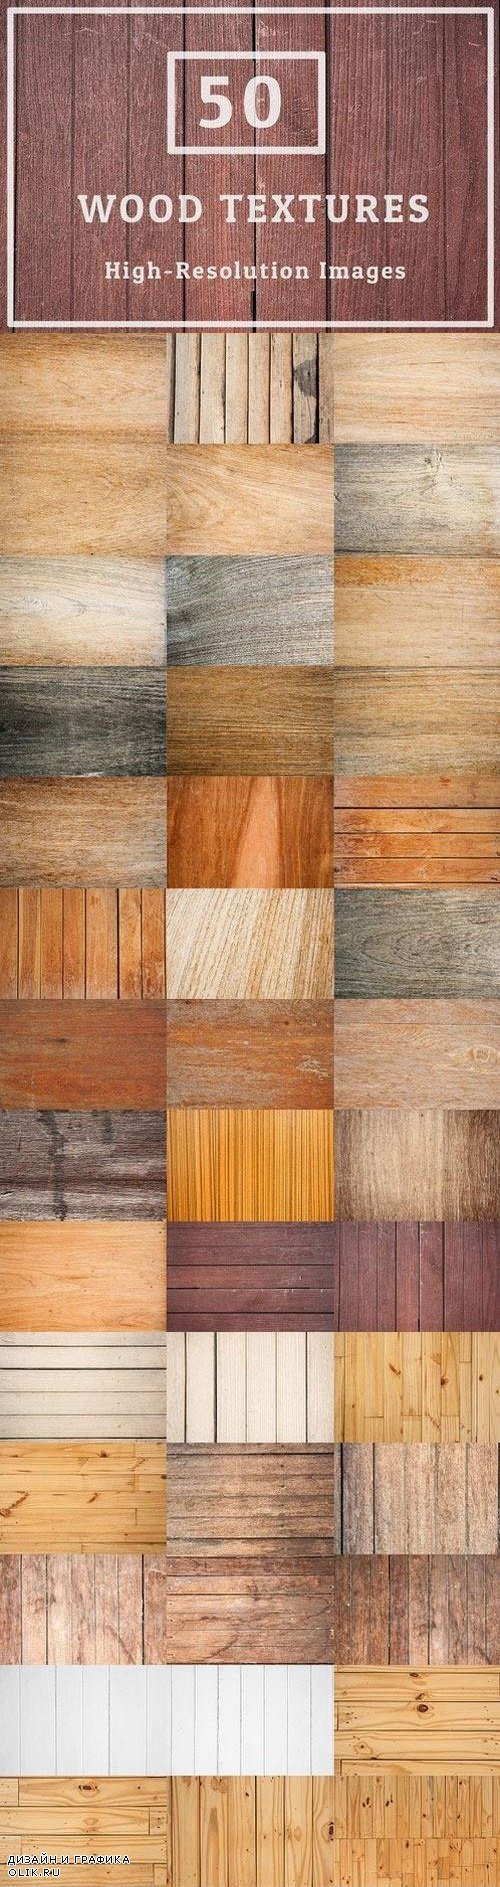 50 Wood Texture Background Set 07 623589